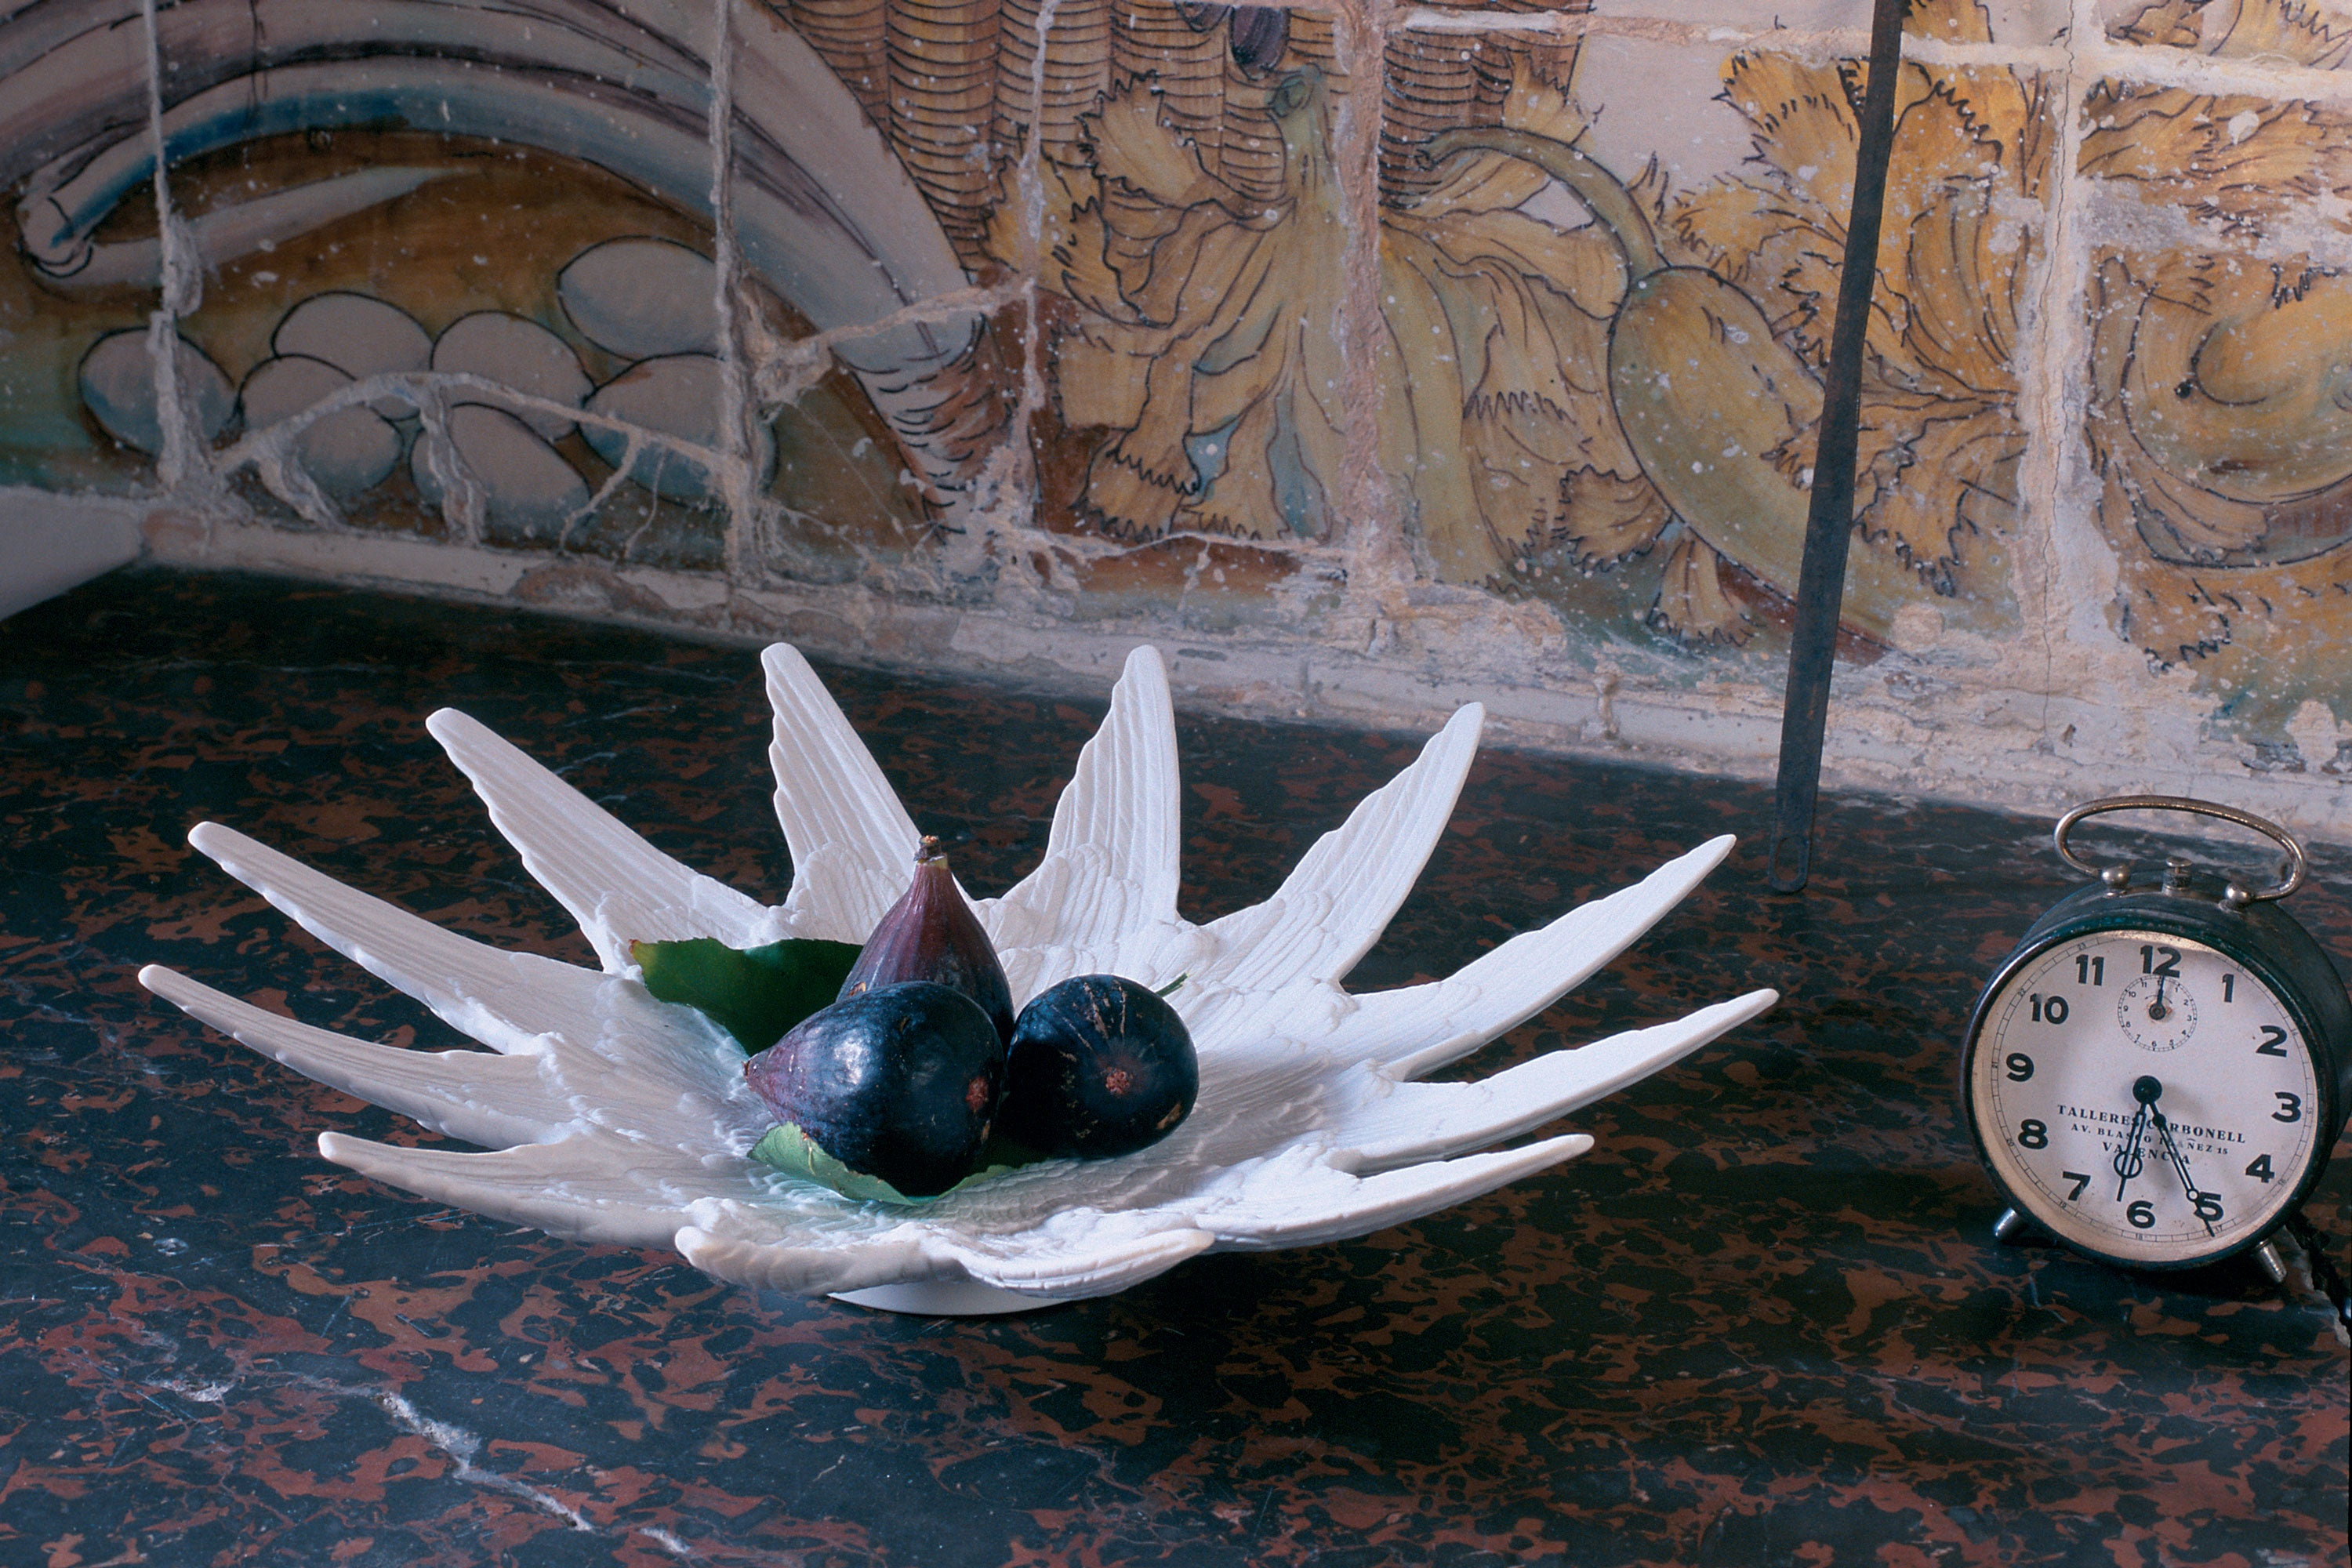 Lladro Papageno Porcelain Fruit Bowl Designed by London Based Studio Bodo Sperlein